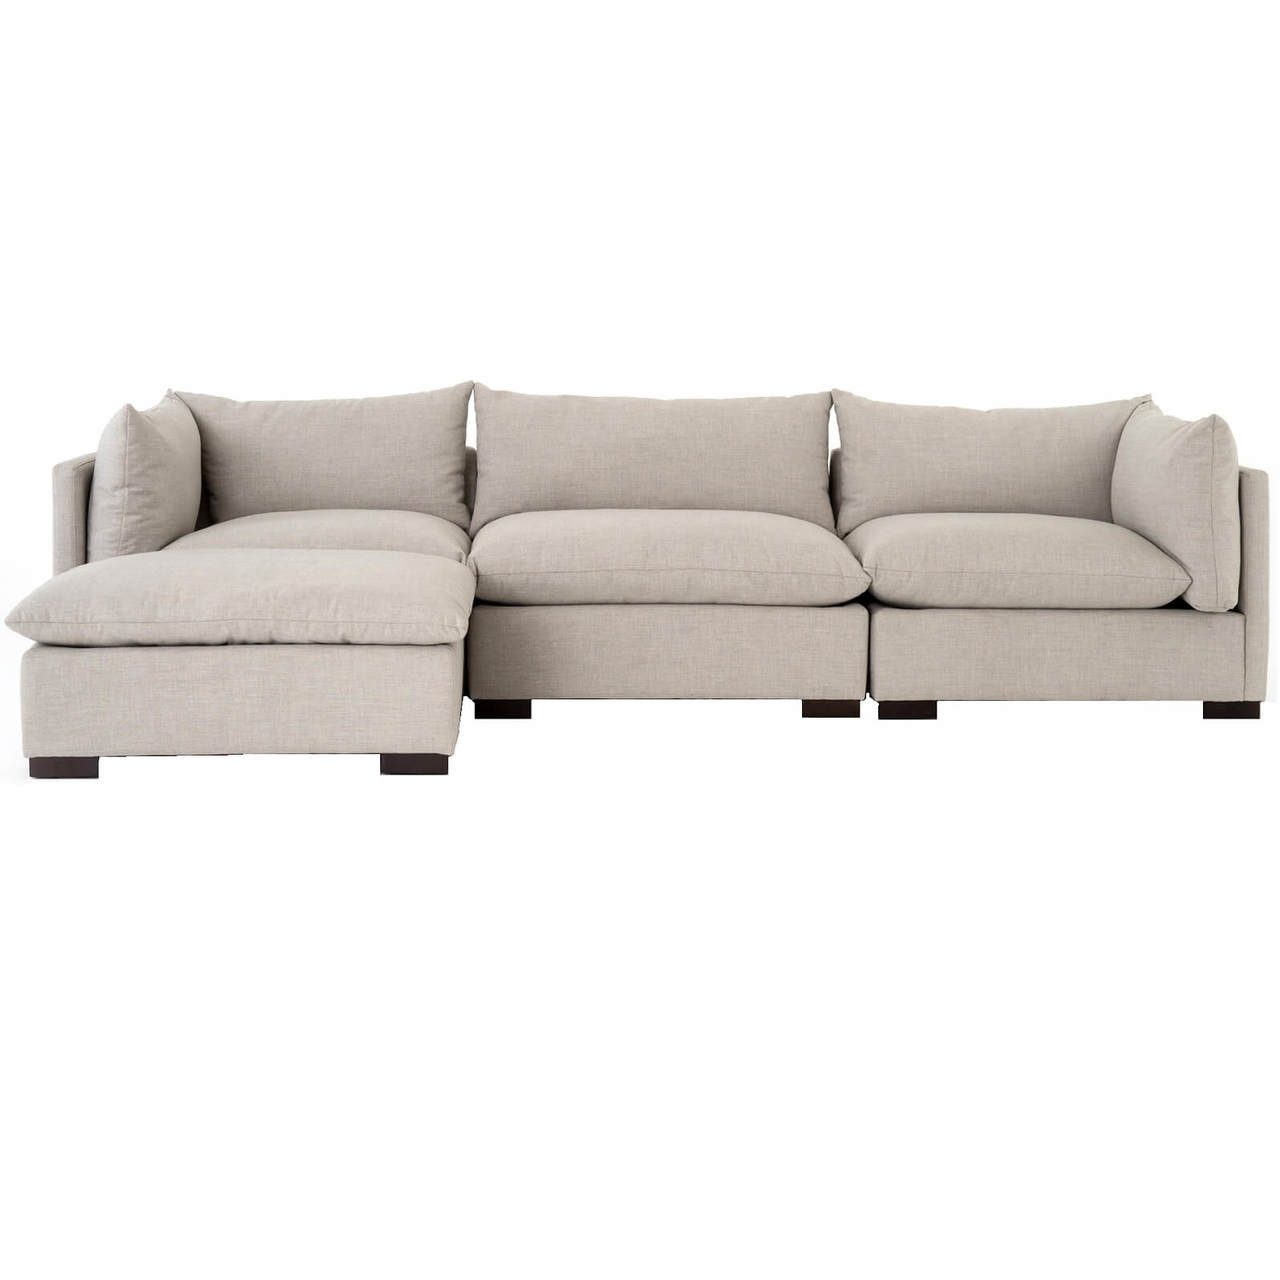 Groovy Westworld Modern Beige 4 Piece Modular Lounge Sectional Sofa Pabps2019 Chair Design Images Pabps2019Com